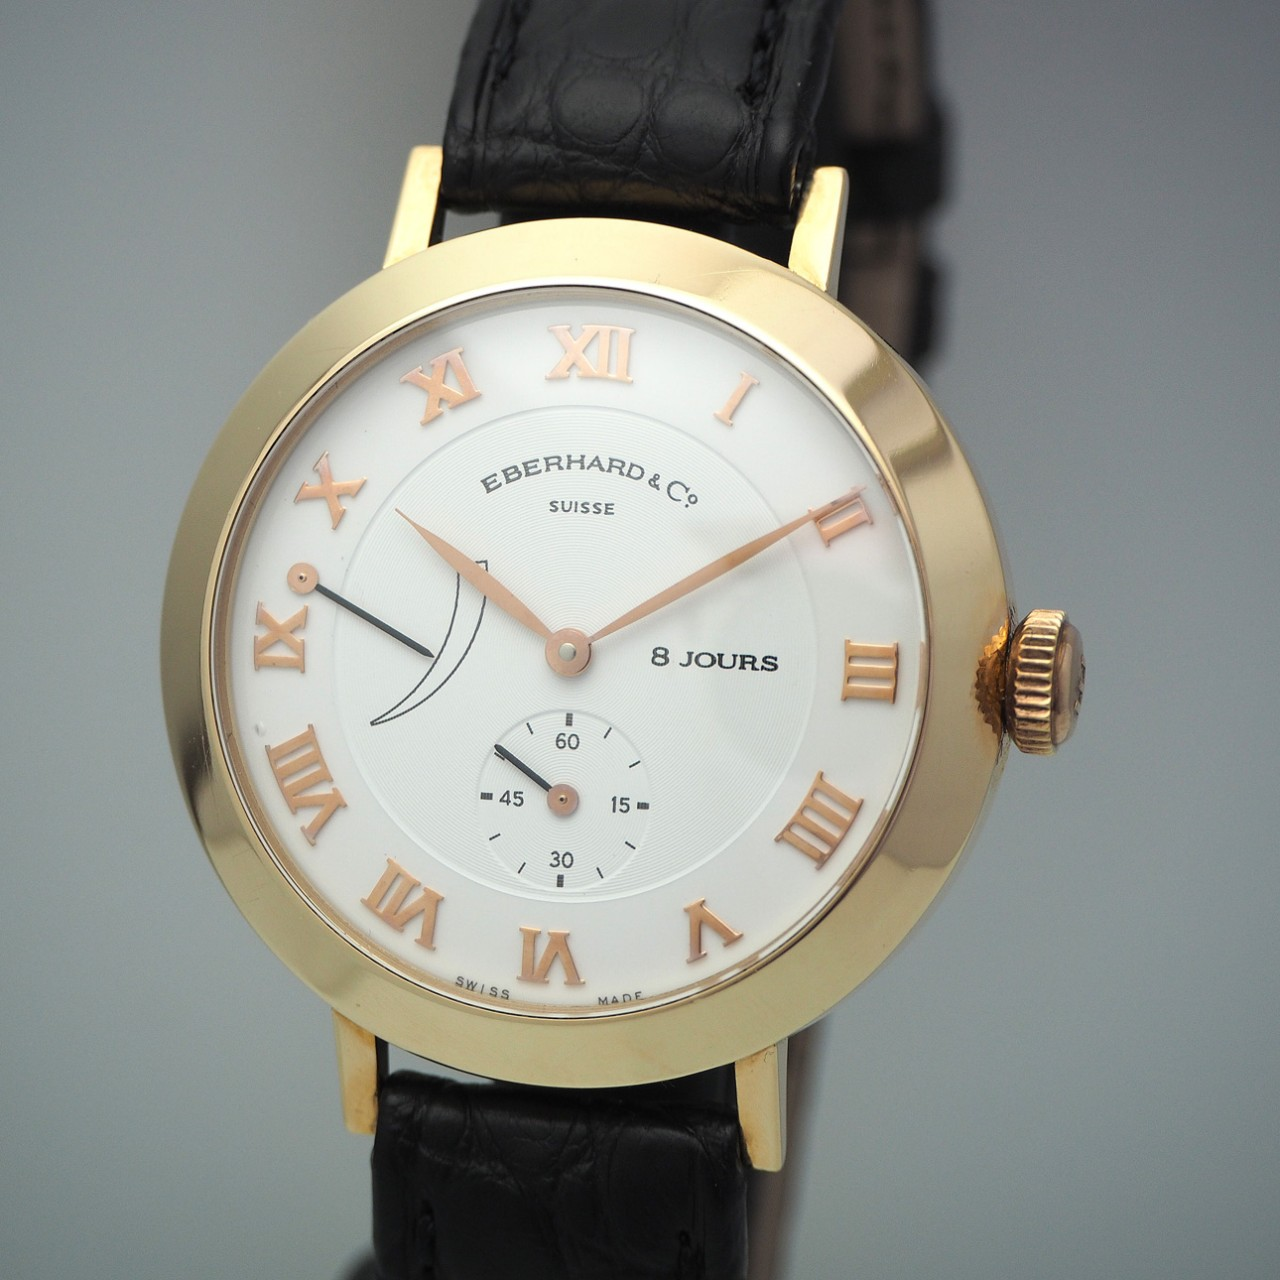 Eberhard & Co Postillon 8 Jours/ 8 Tage, Ref.: 20022 -Gold 18k/750